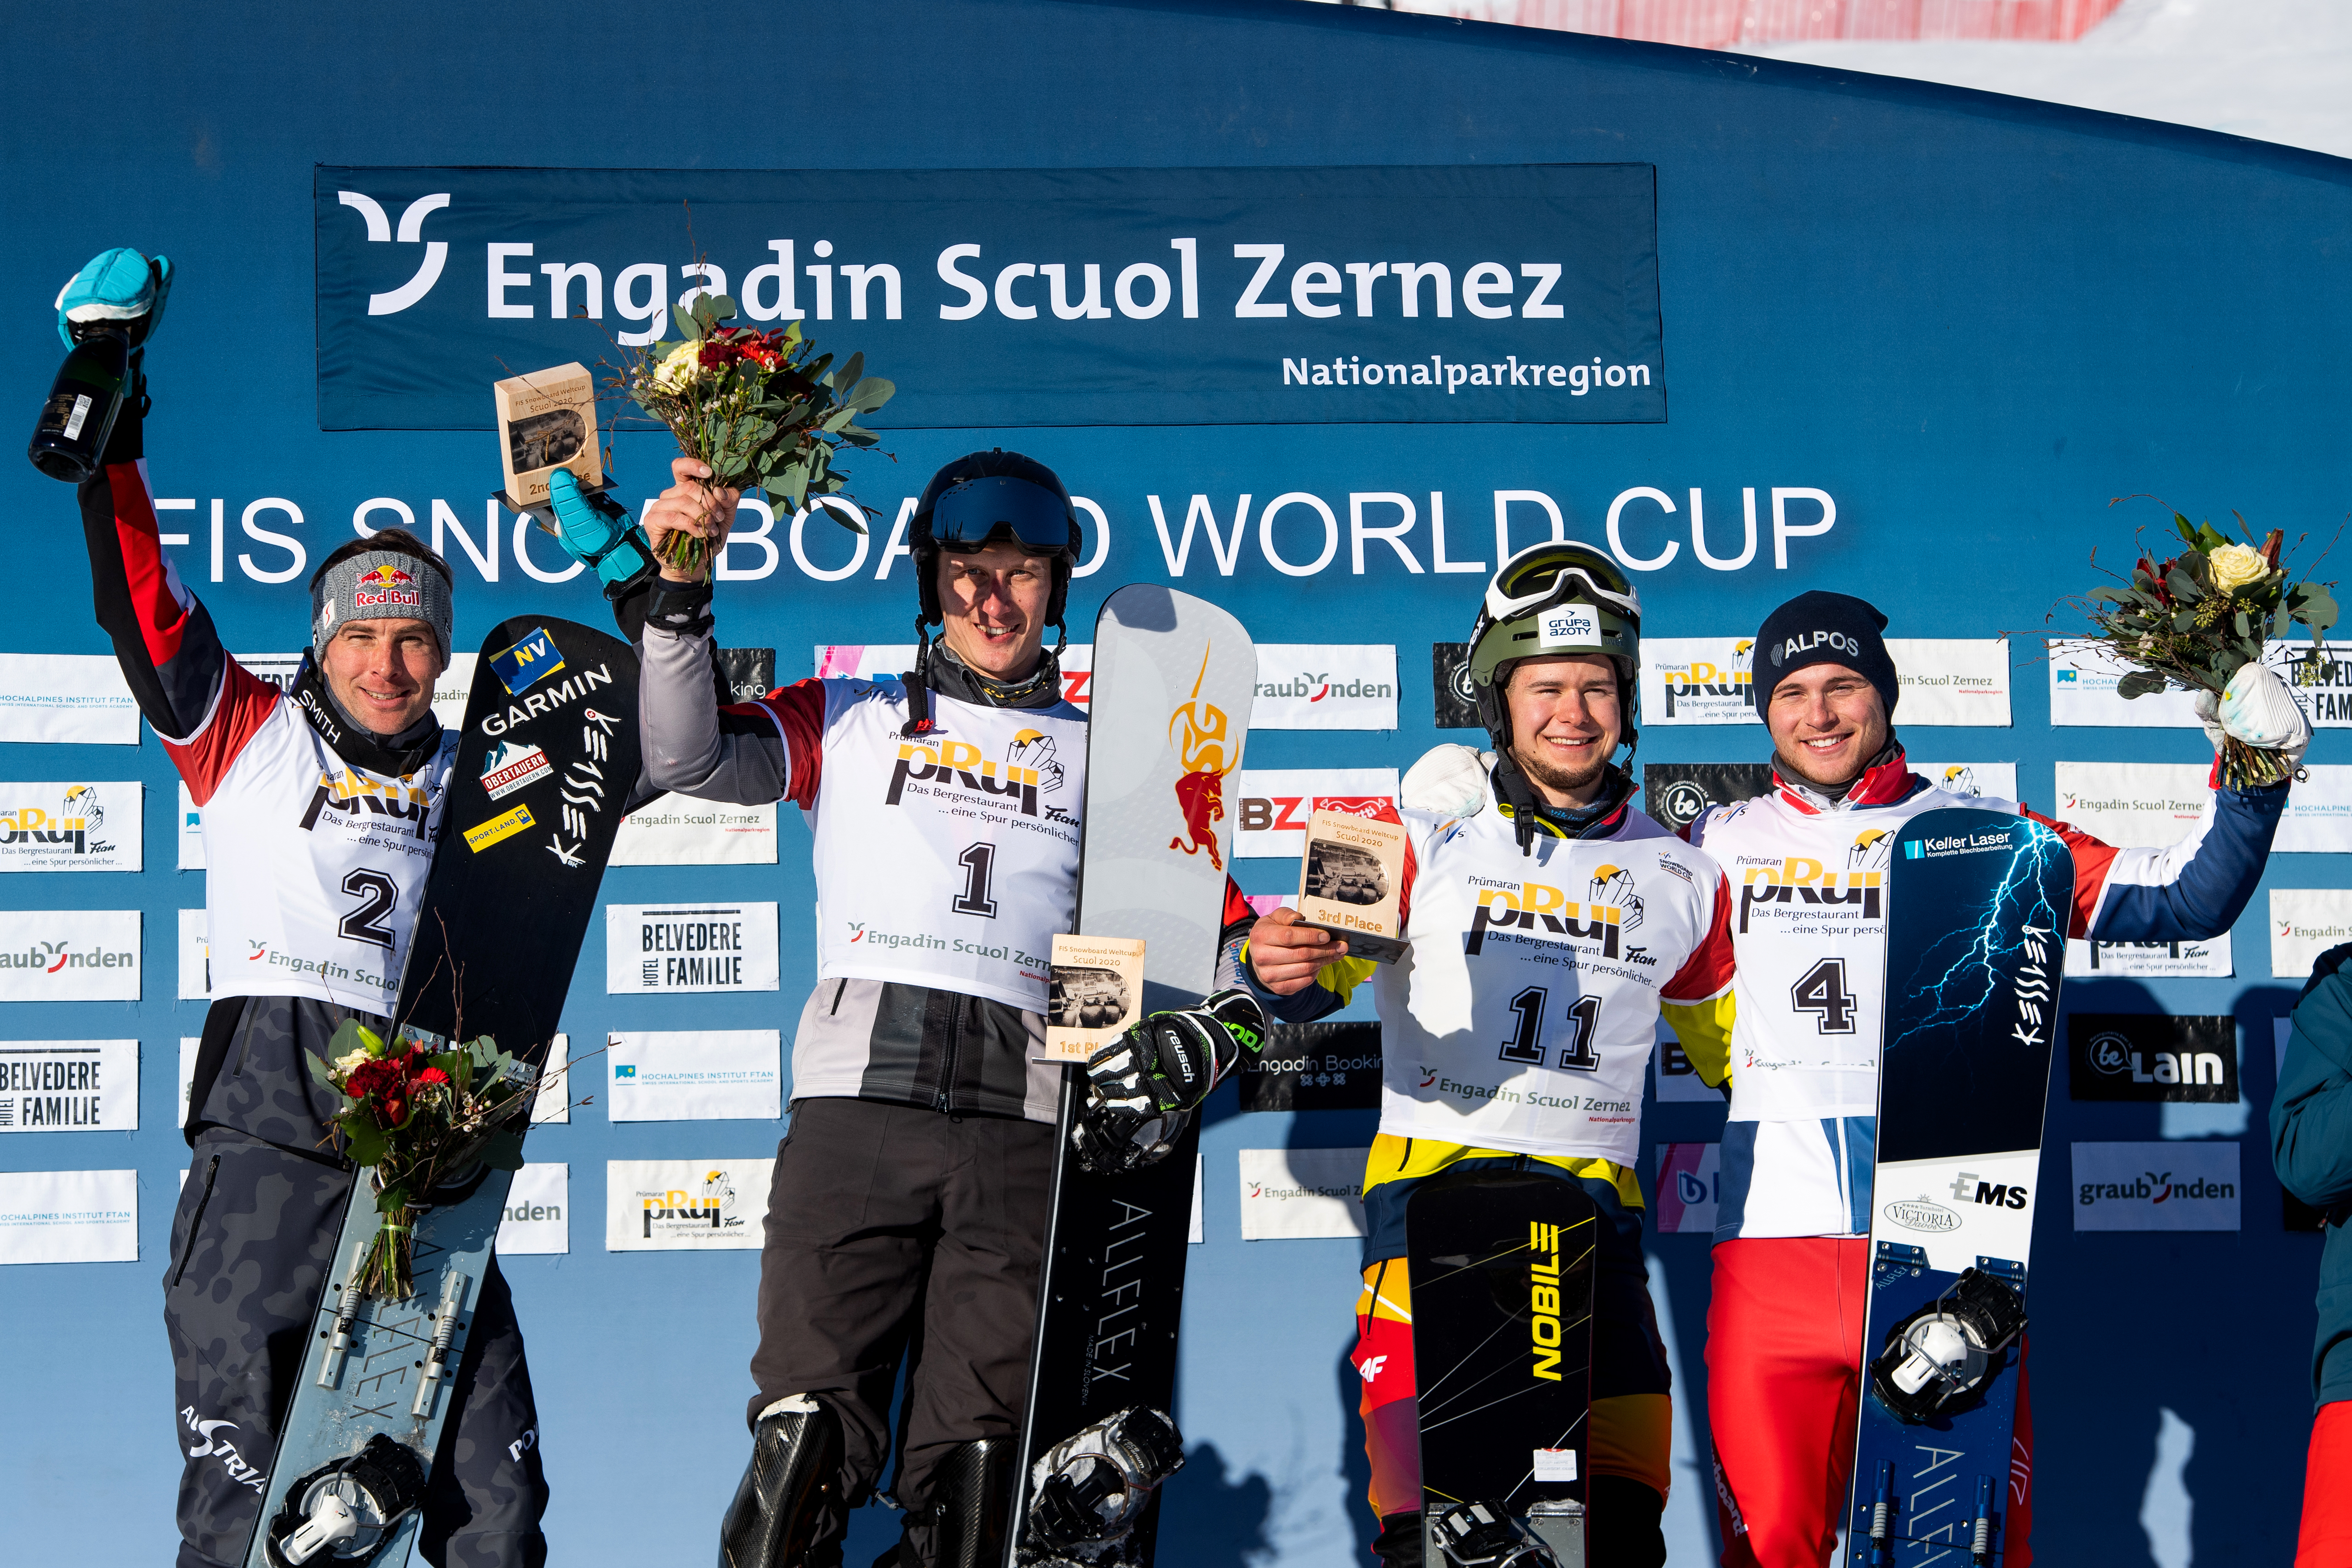 FIS Snowboard World Cup - Scuol SUI - PGS - Men's podium with 2nd KARL Benjamin AUT, 1st SOBOLEV Andrey RUS, 3rd KWIATKOWSKI Oskar POL and CAVIEZEL Dario SUI © Miha Matavz/FIS